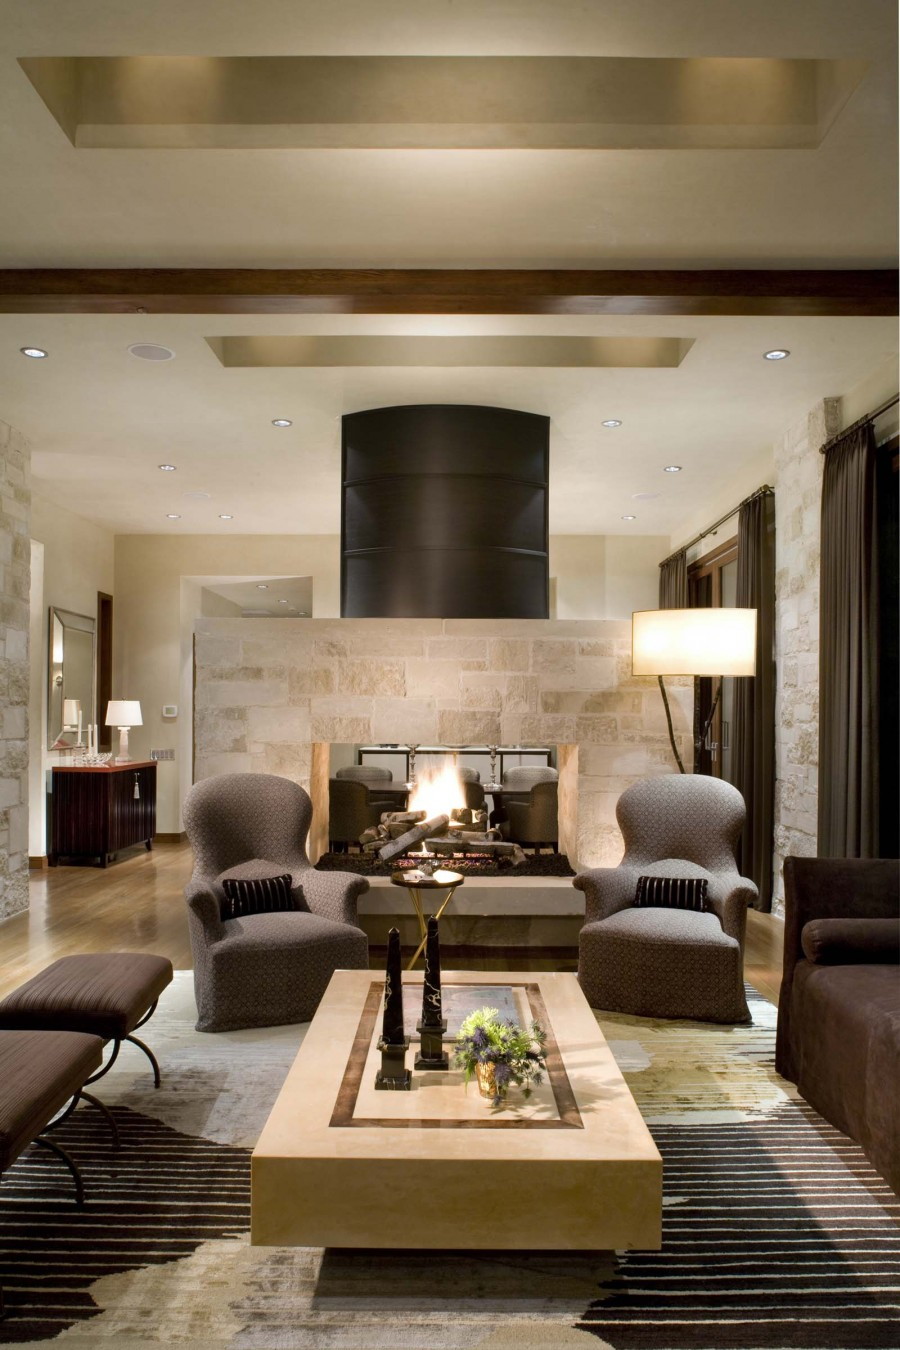 16 fabulous earth tones living room designs decoholic Living room design ideas with fireplace